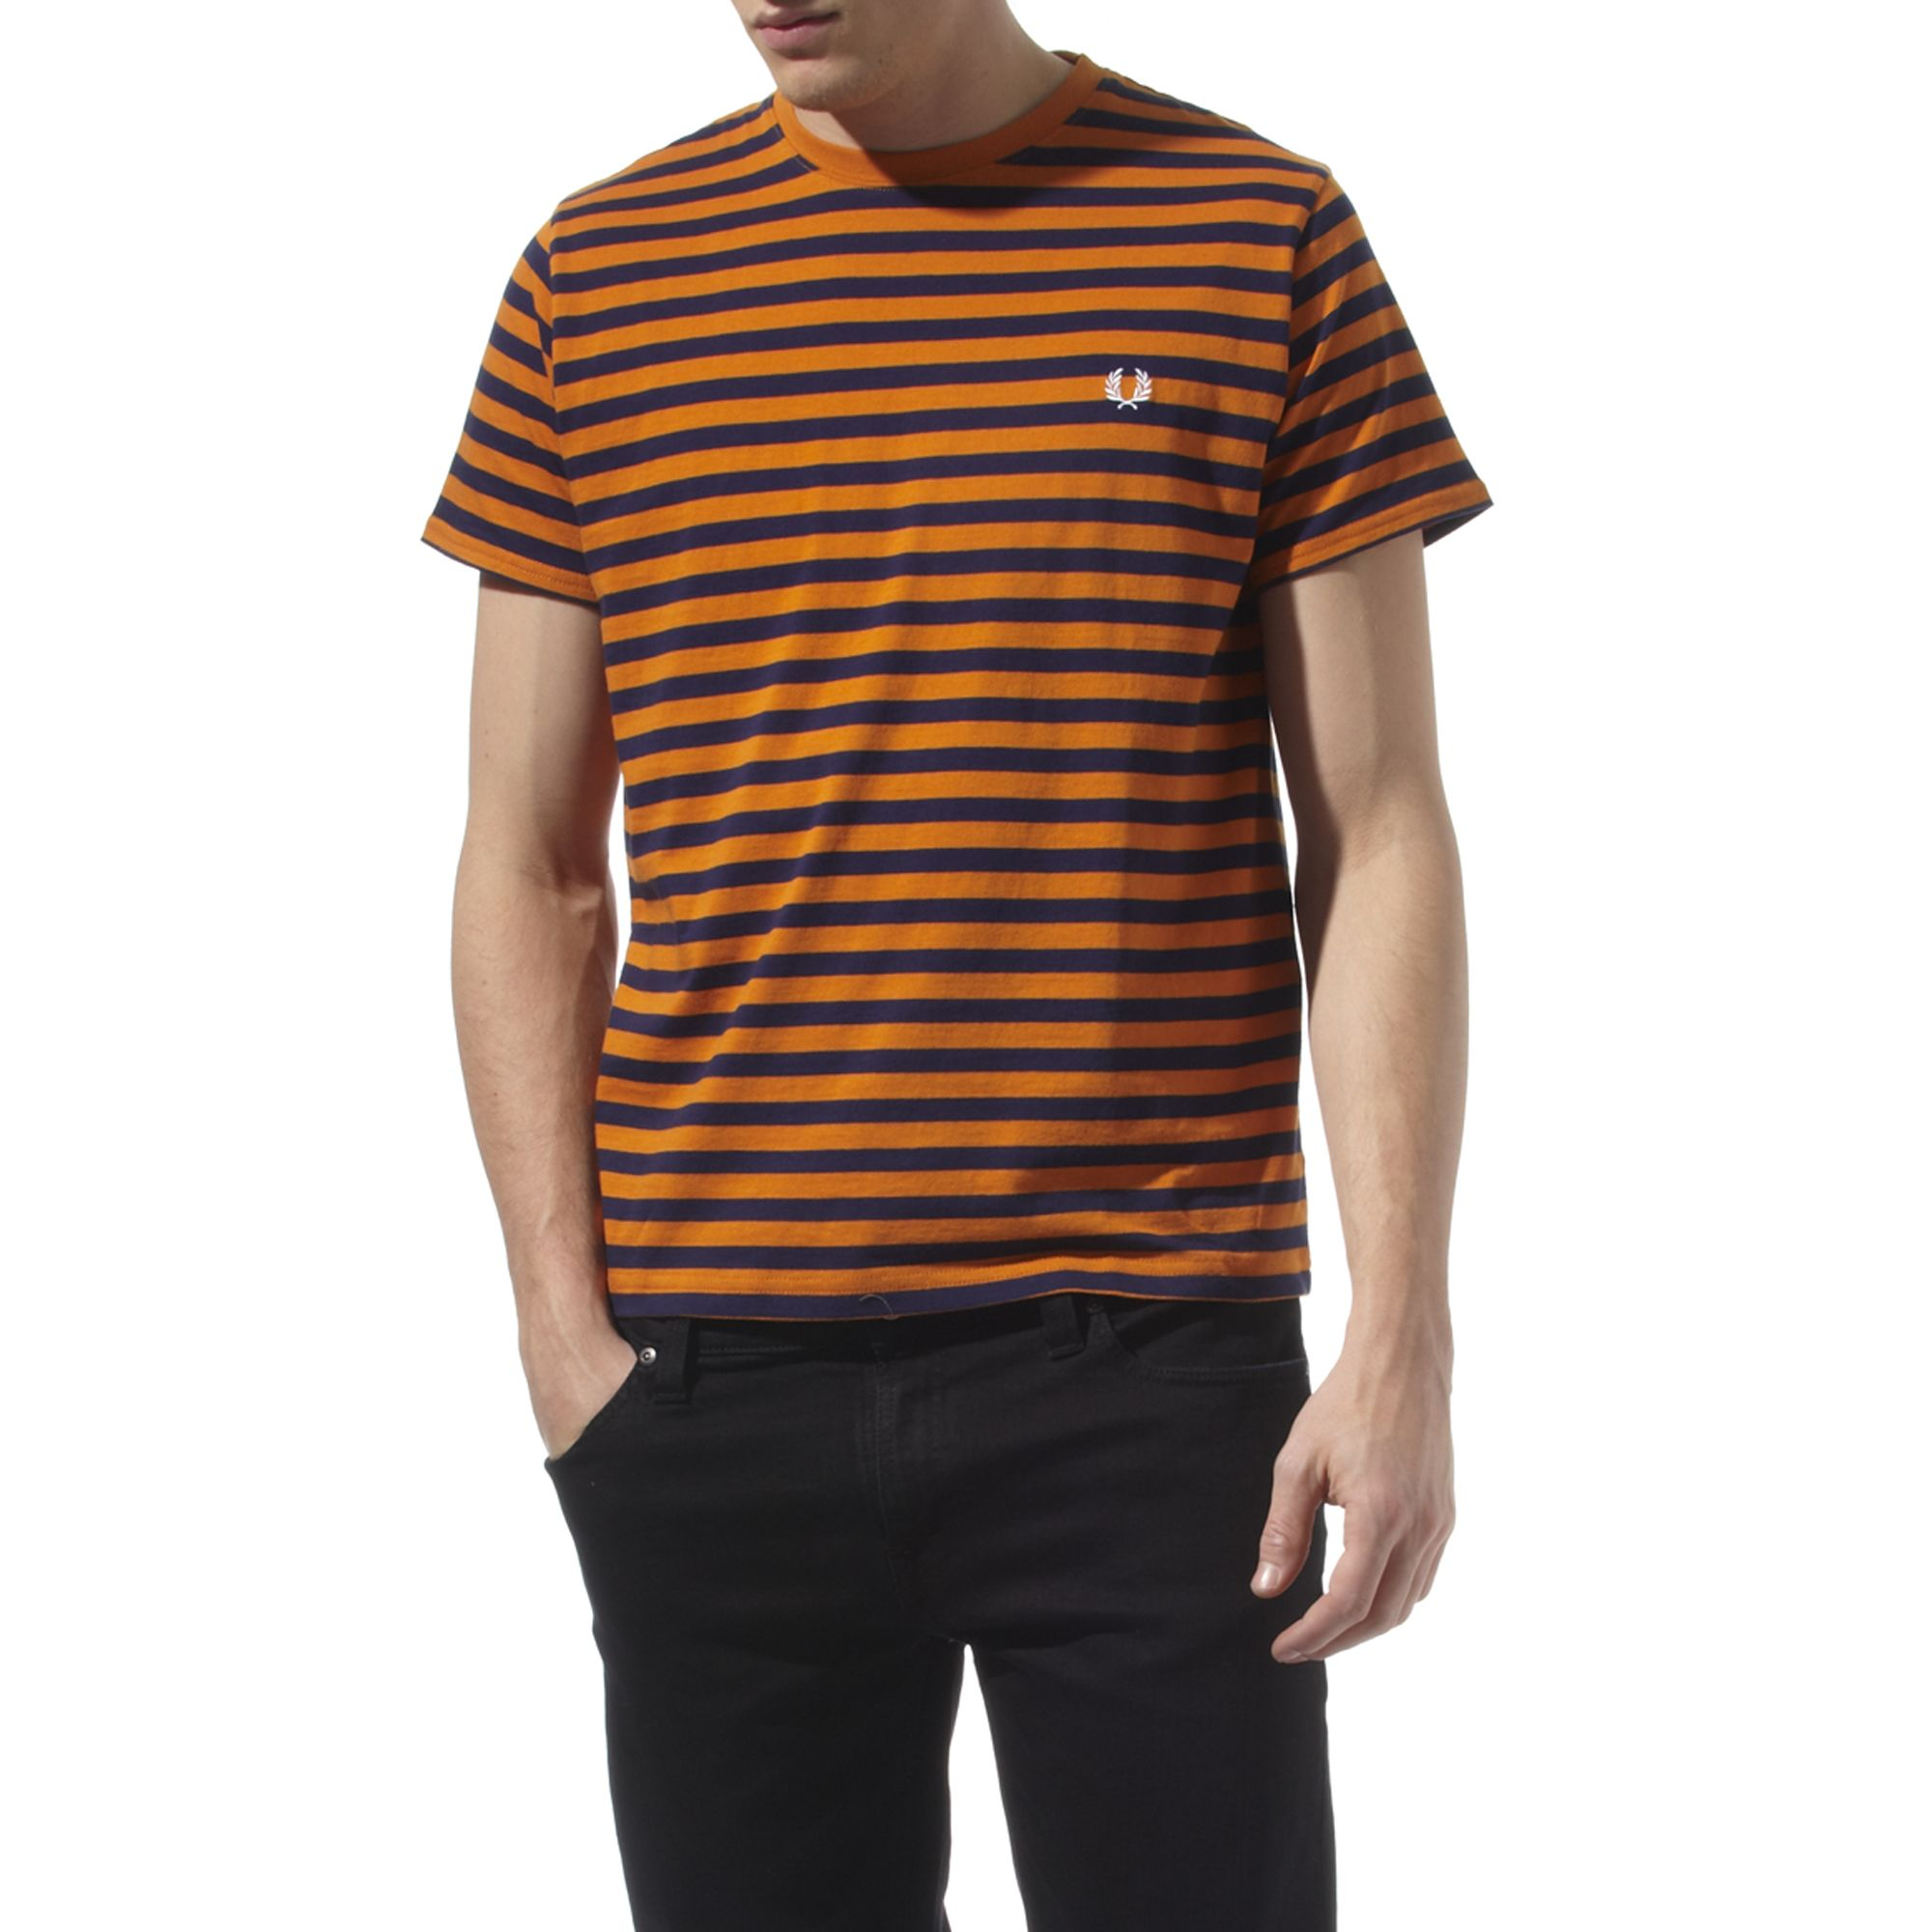 fred perry breton striped t shirt in orange for men lyst. Black Bedroom Furniture Sets. Home Design Ideas